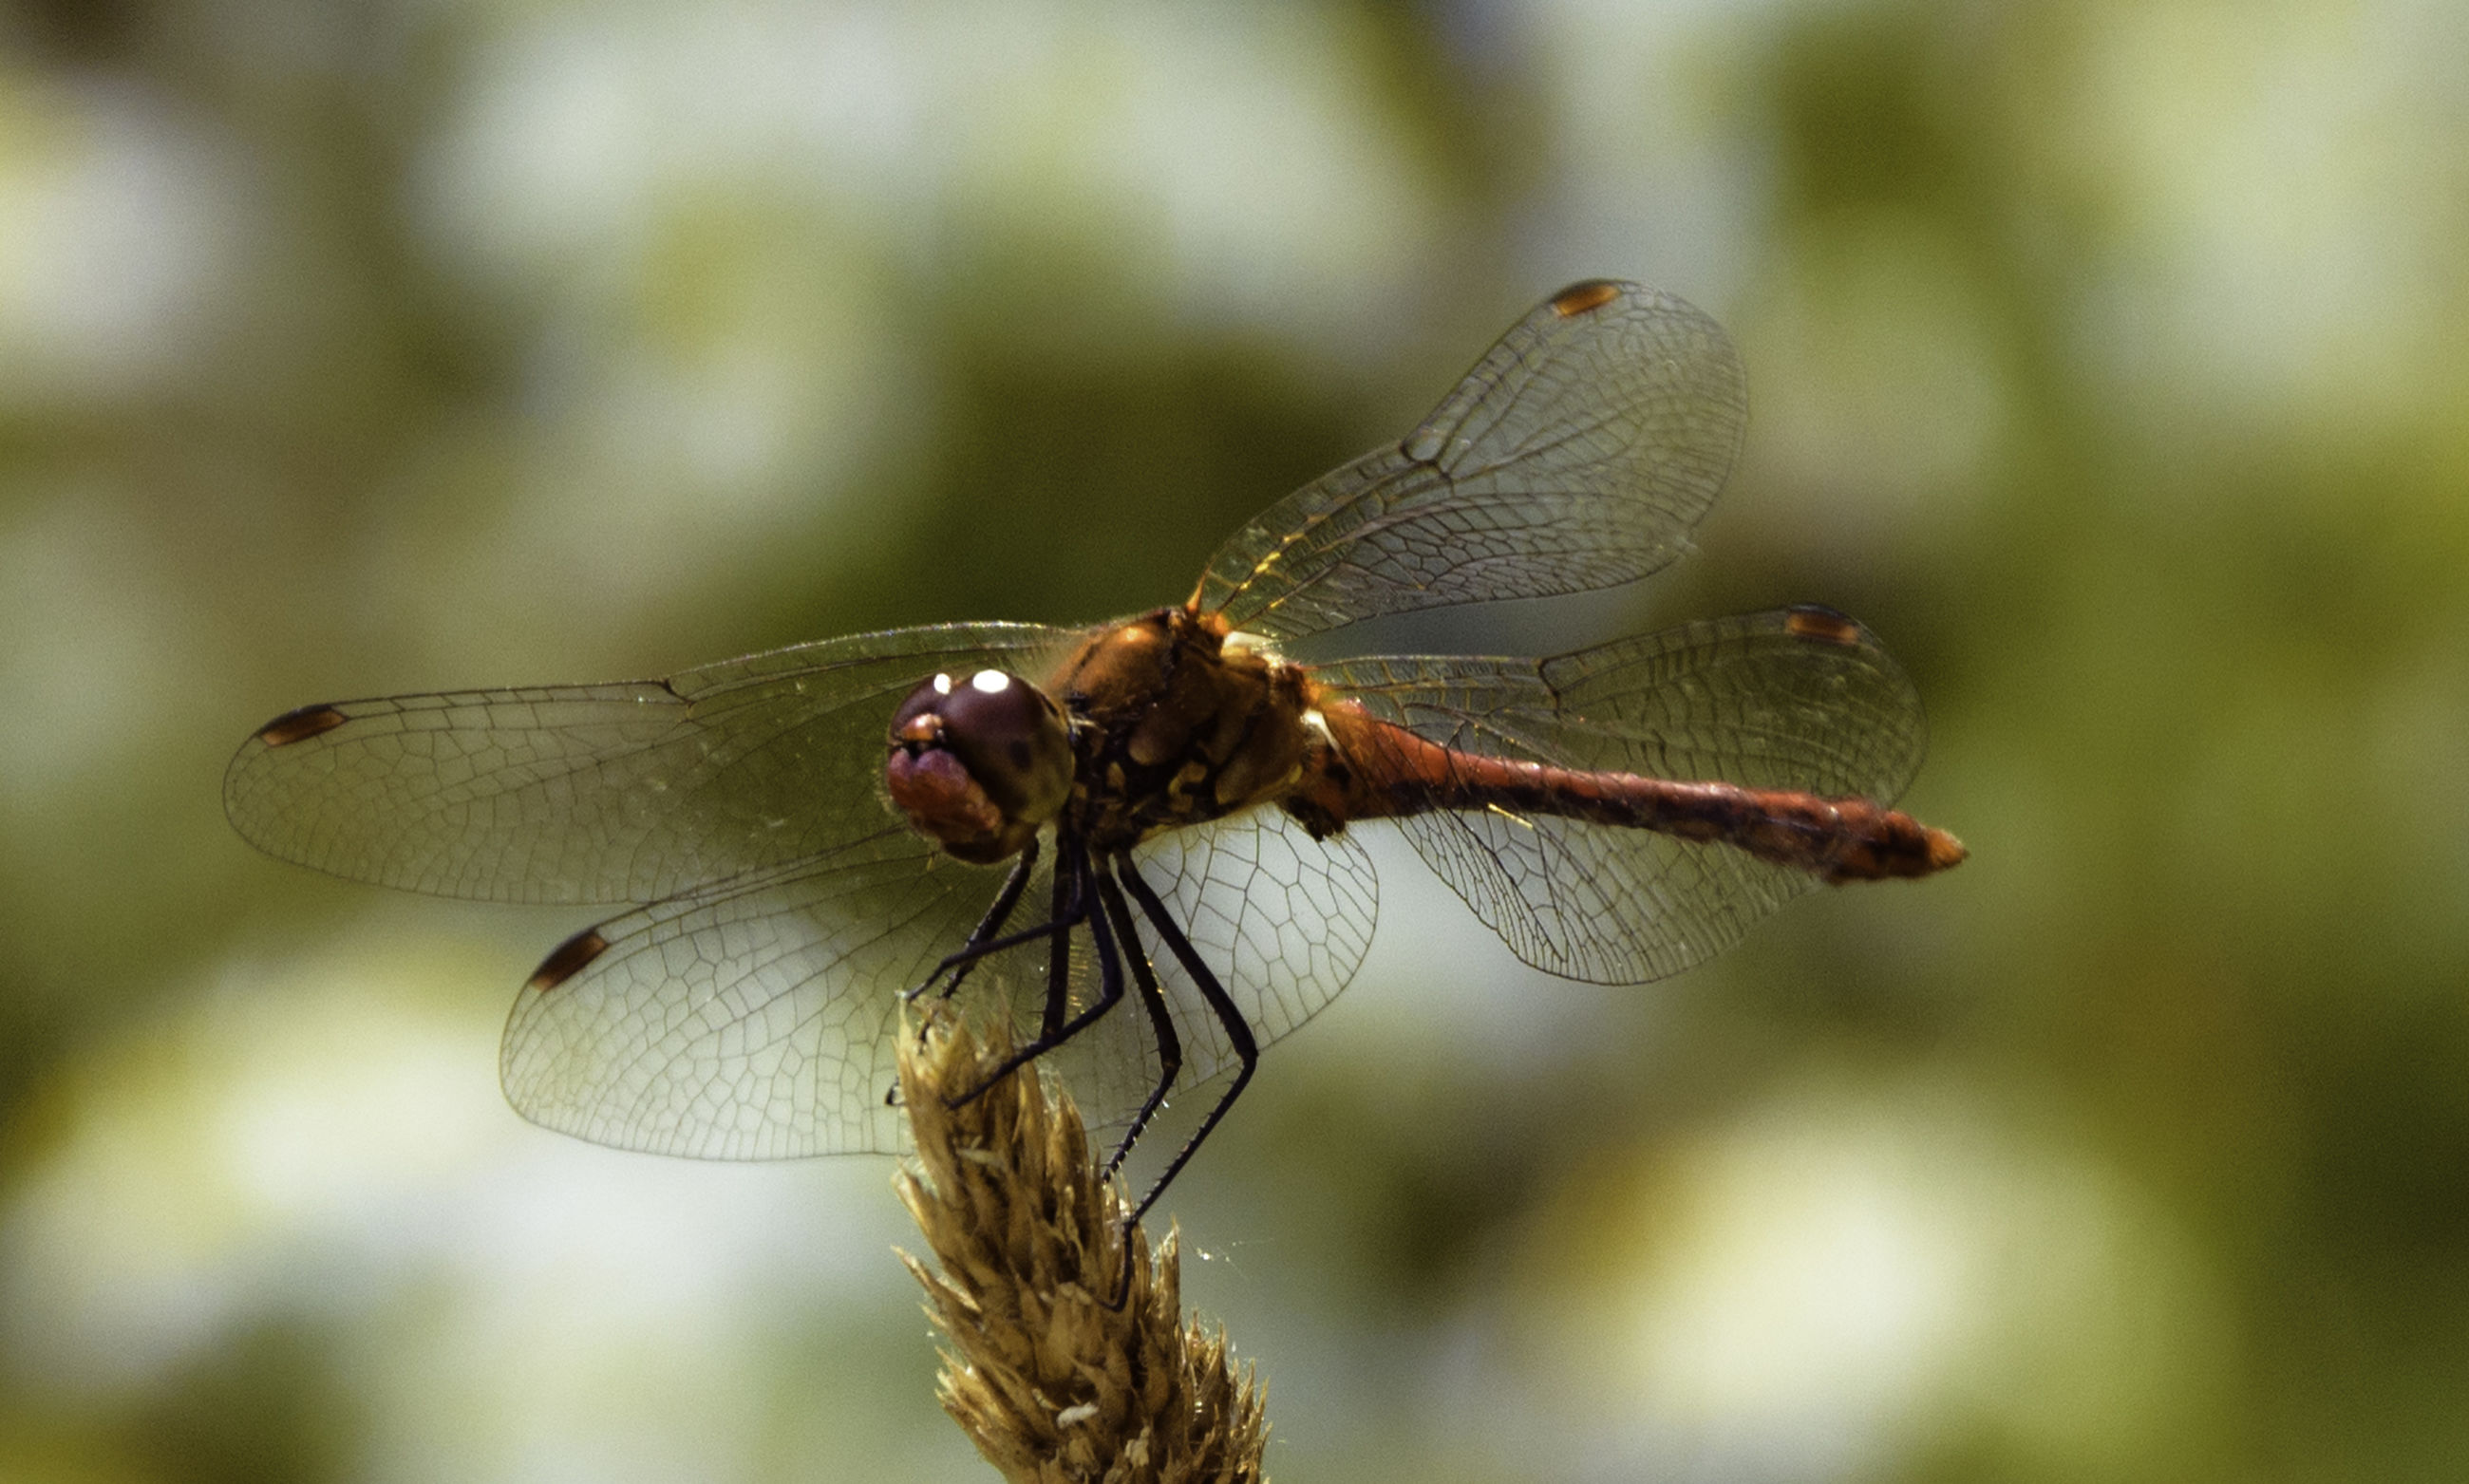 CLOSE-UP OF DRAGONFLY ON PLANT OUTDOORS